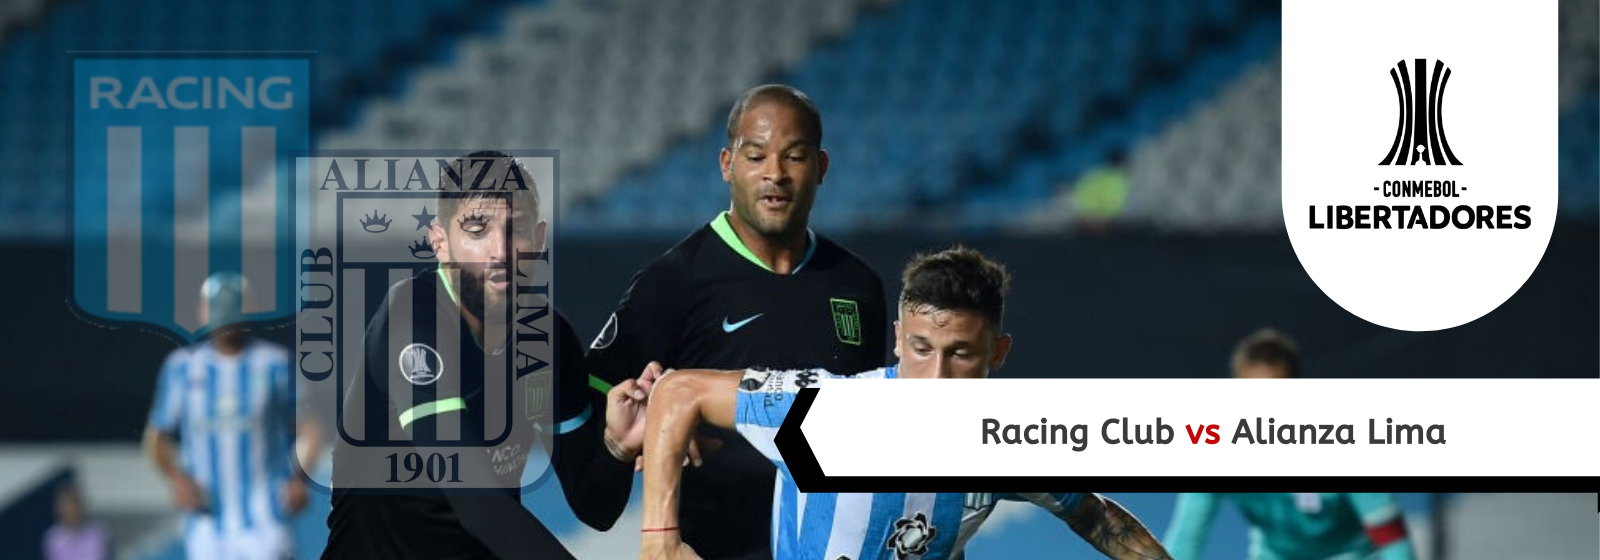 Asianconnect: Racing Club (Argentina) vs Alianza Lima (Peru) Odds for March 12, 2020